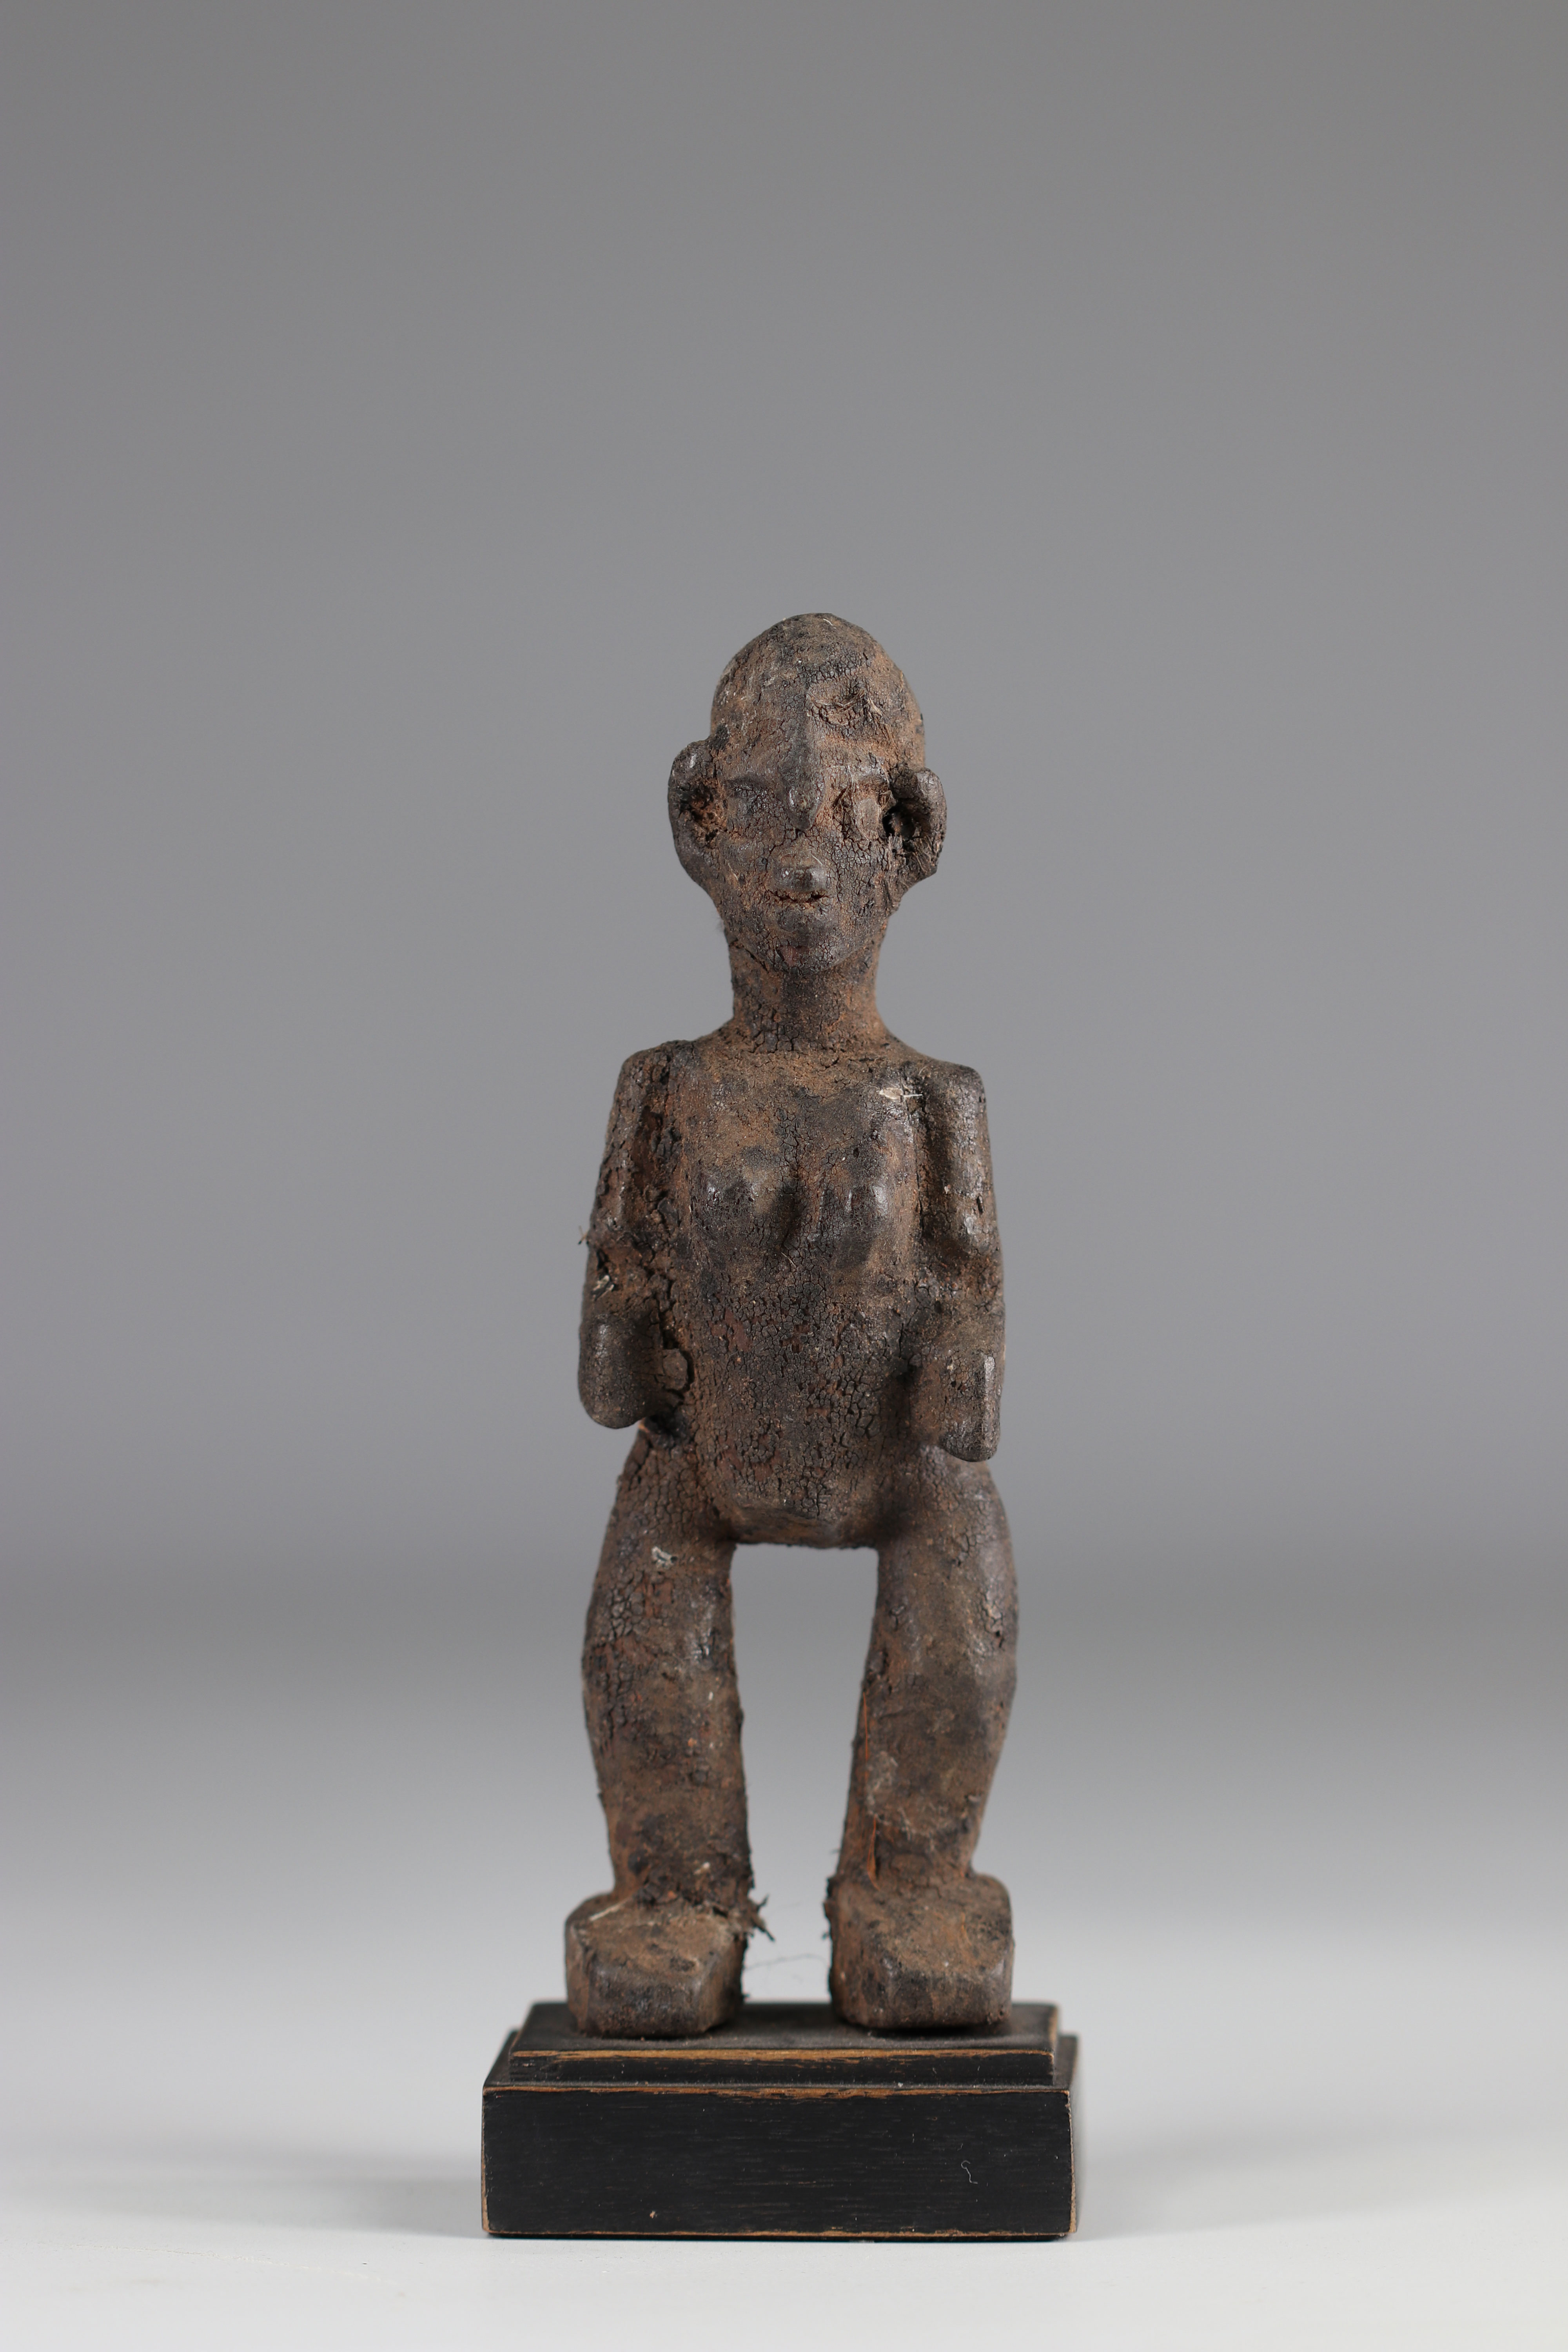 Kassena-Rare statuette and old Kassena statuette (Burkina Faso). Dense wood covered with a thick sac